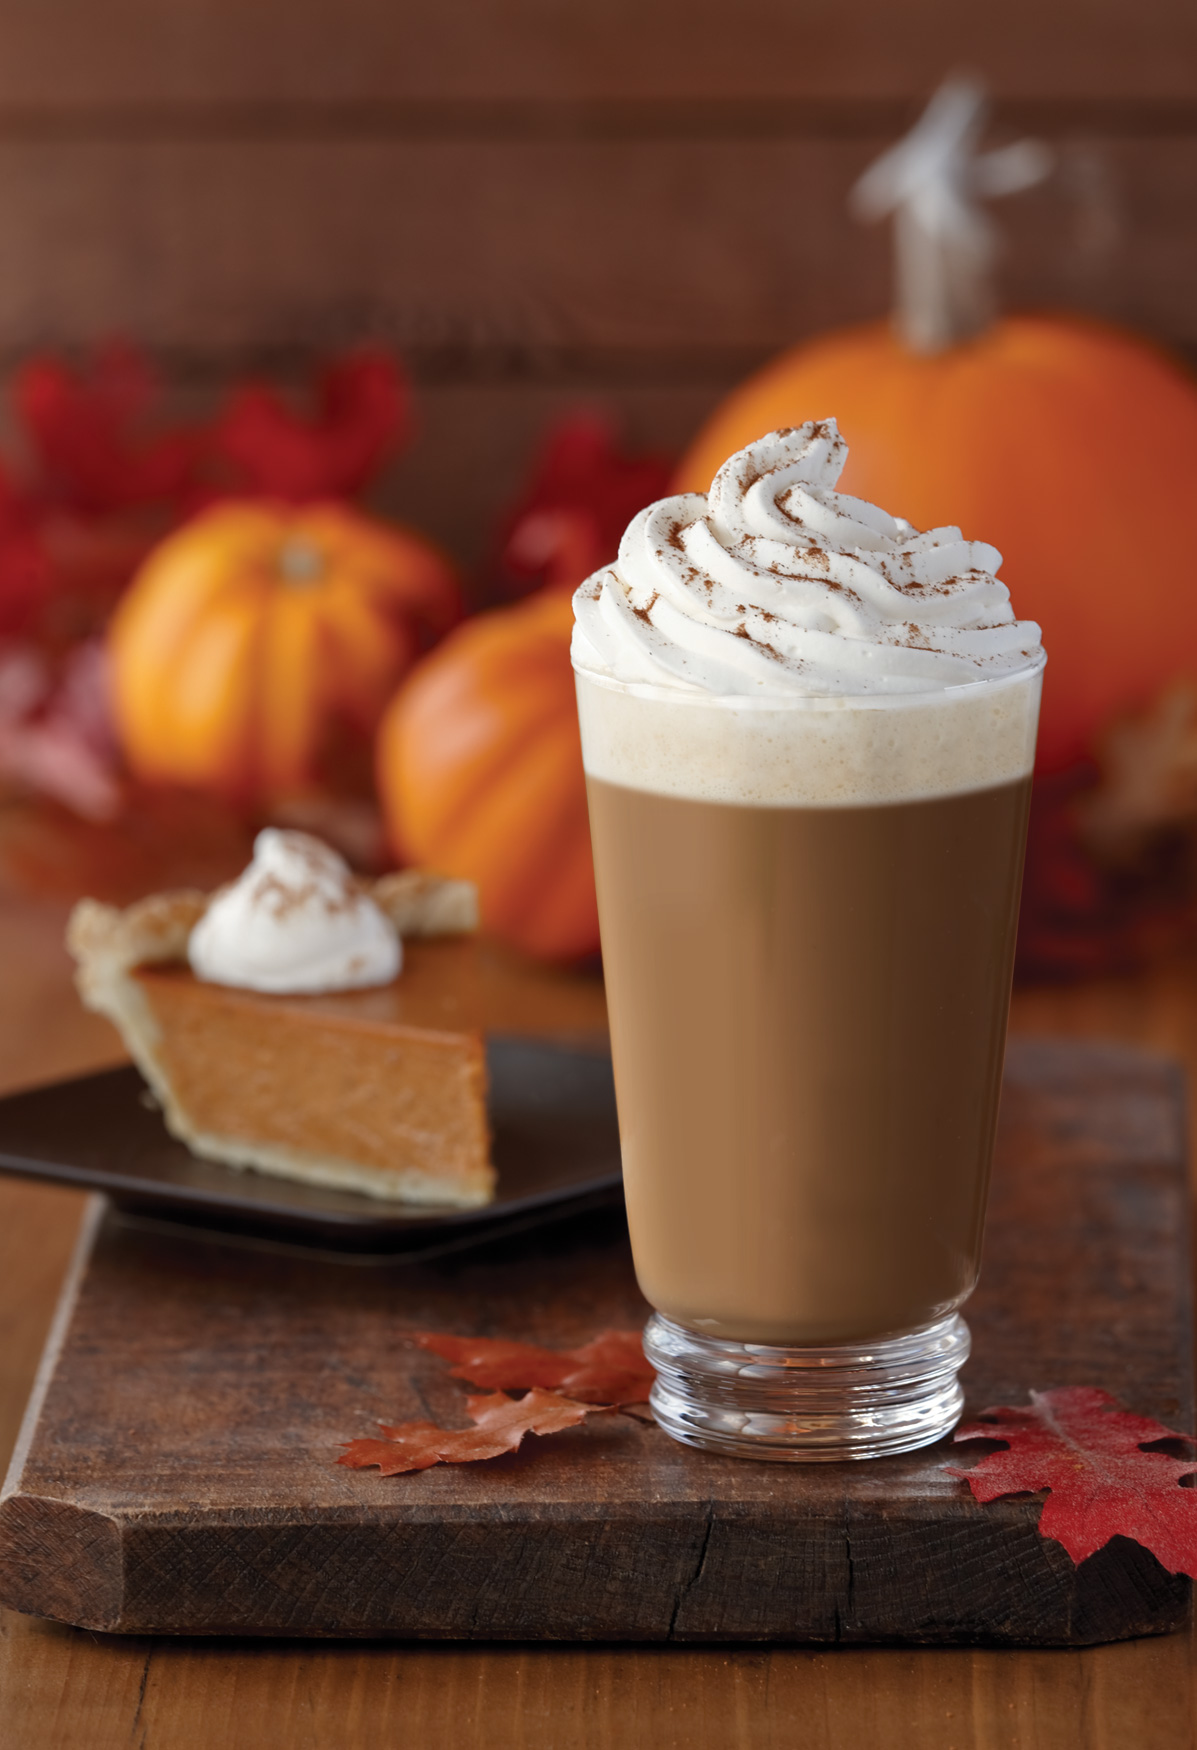 Pictures Of Fall Wallpapers Sugar Free Pumpkin Pie Latte Milk Recipes And Other